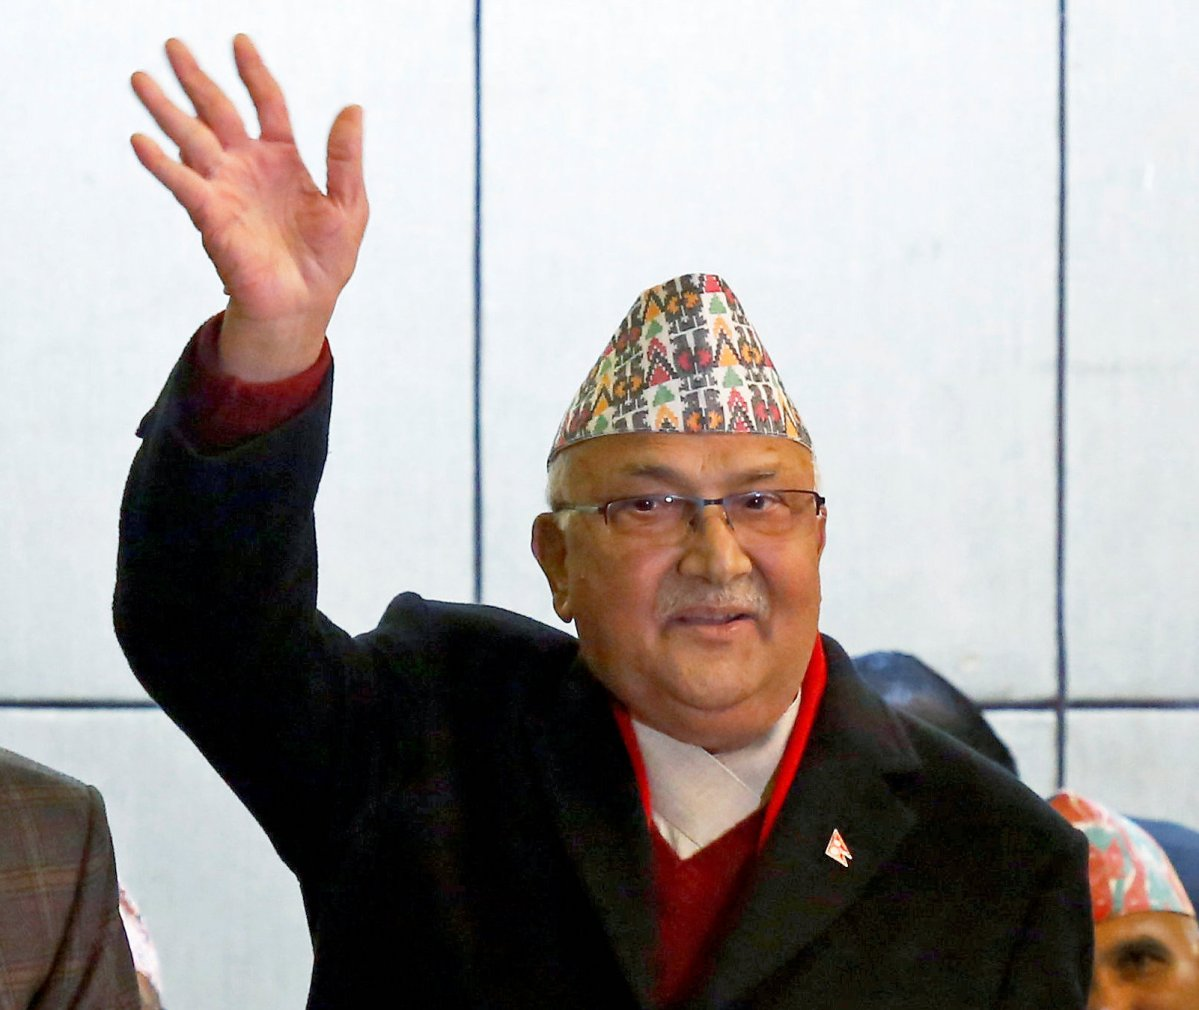 CPN-UML party chairman K P Oli waves to journalists during a news conference in Kathmandu on December 17, 2017. Photo: Reuters / Navesh Chitrakar